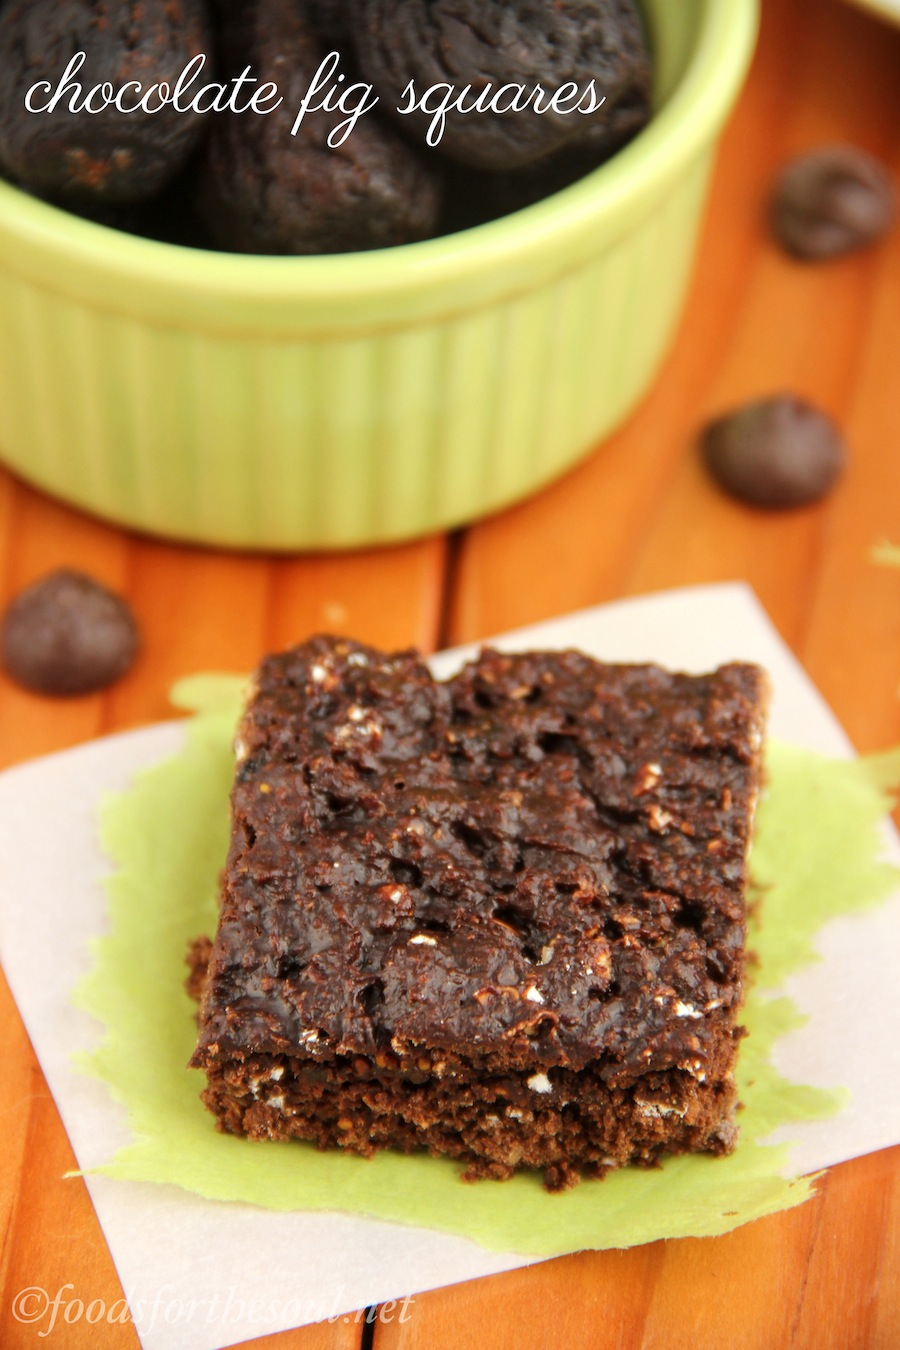 Chocolate fig squares: Decadent flavor hides 4 grams of protein